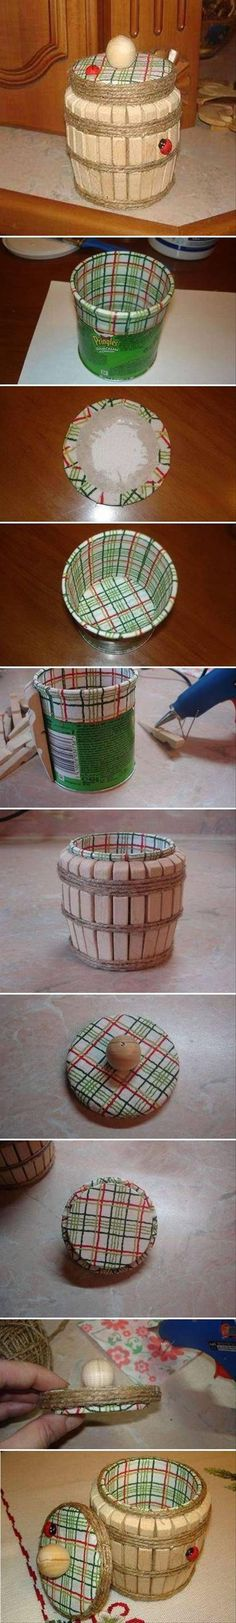 Dump A Day Simple Ideas That Are Borderline Crafty - 50 Pics